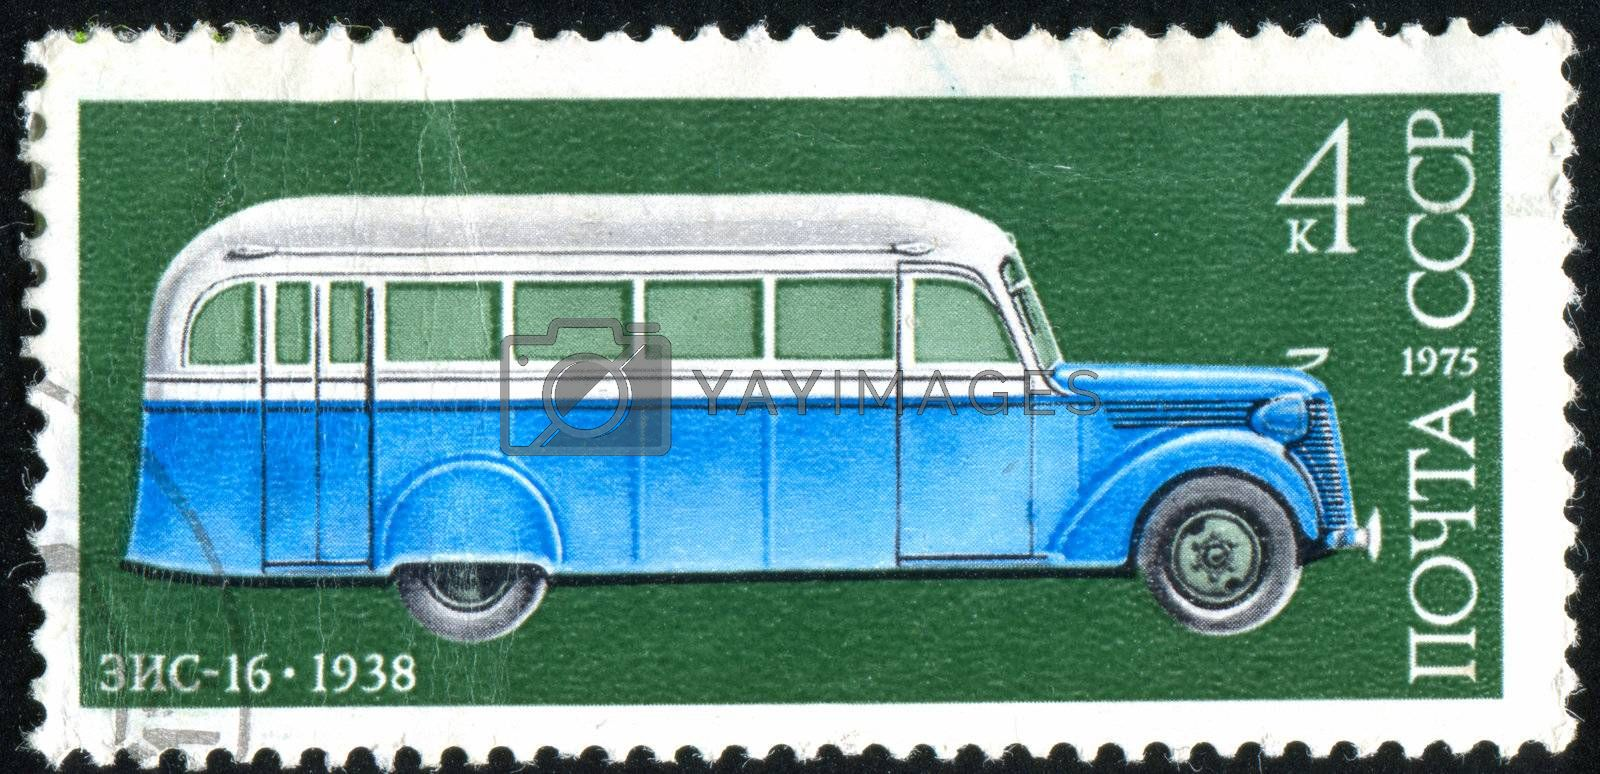 RUSSIA - CIRCA 1975: stamp printed by Russia, shows ancient bus, circa 1975.